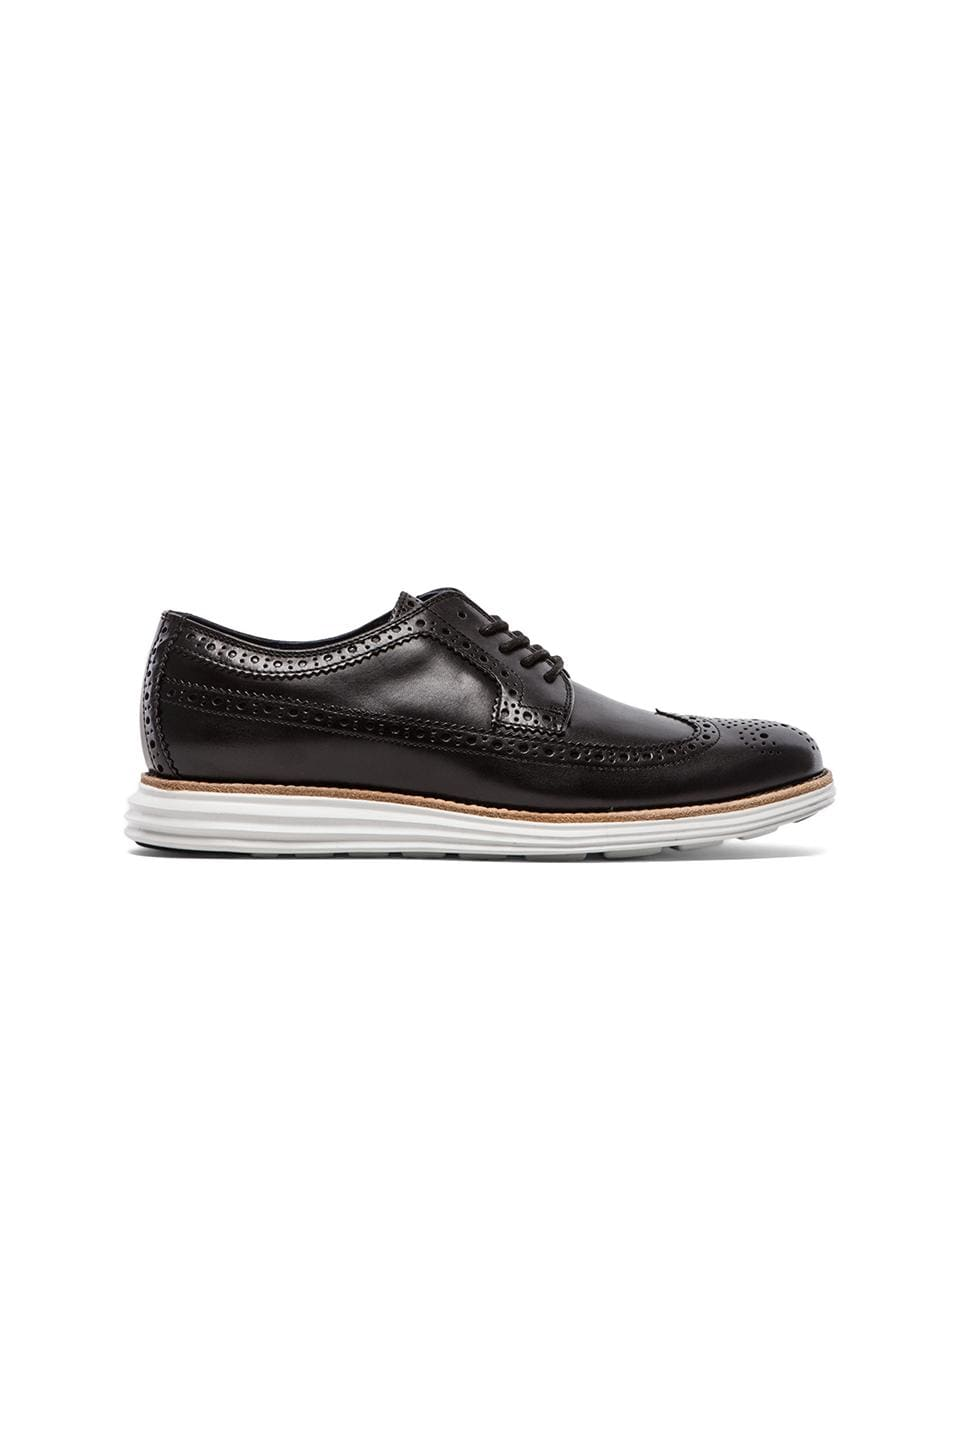 Cole Haan Lunargrand Oxford in Black & White